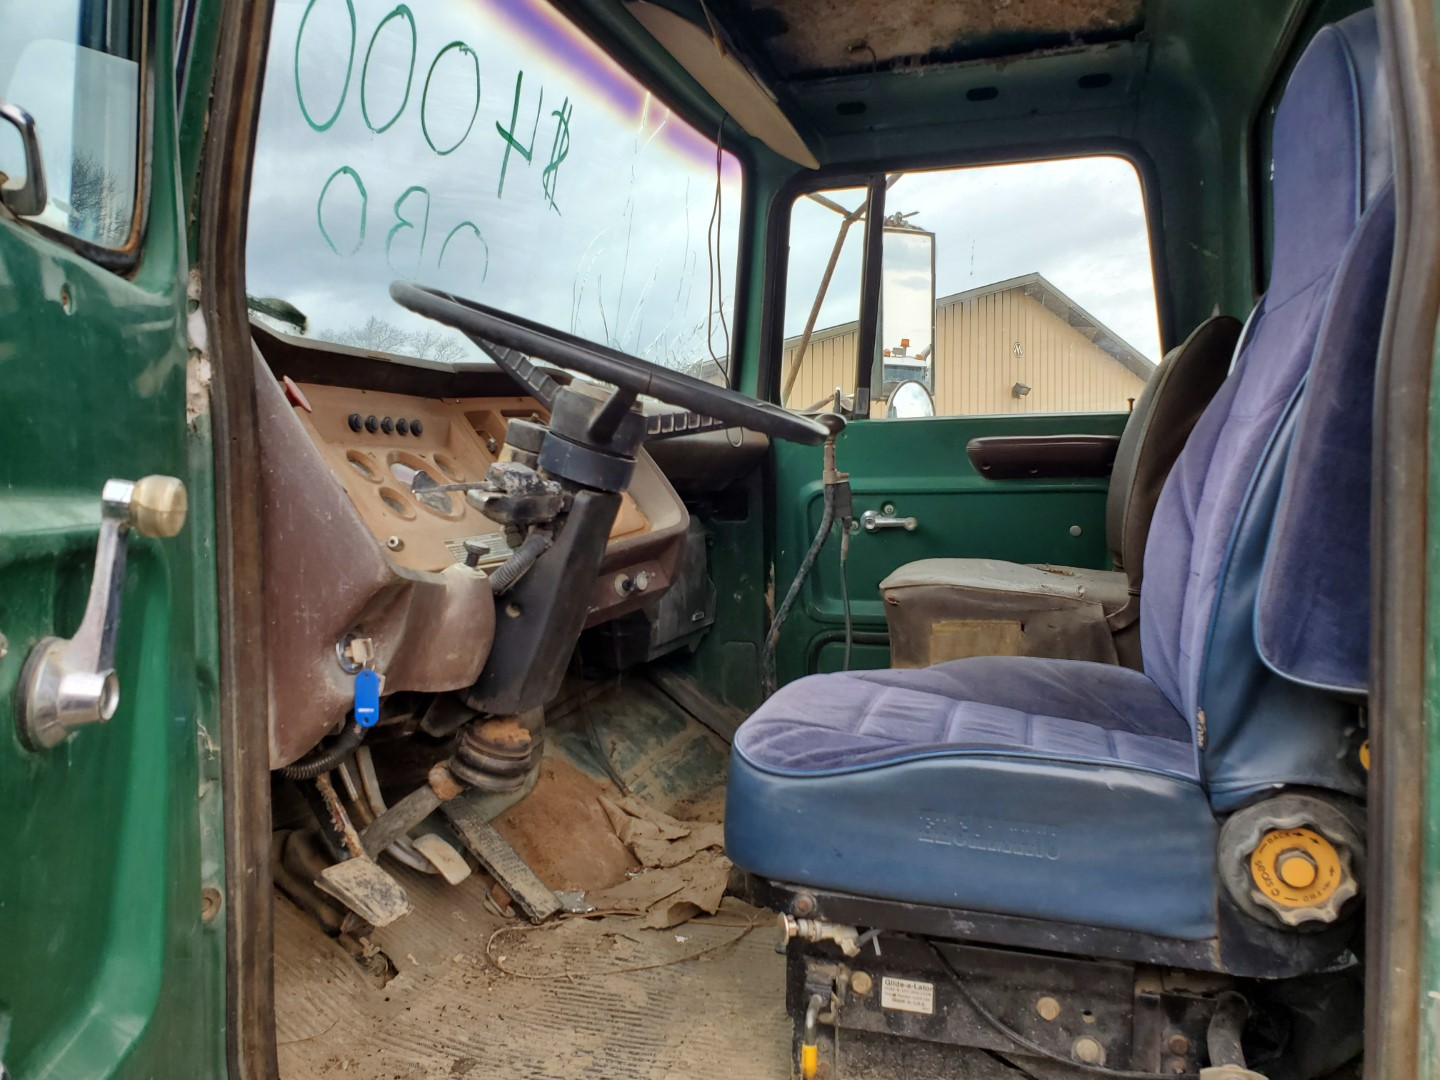 1976 Ford 8000 Single Axle Dump Truck, 9 ft Dump Bed, Manual Transmission, 2-Speed Axle, 86,500 Mile - Image 5 of 6